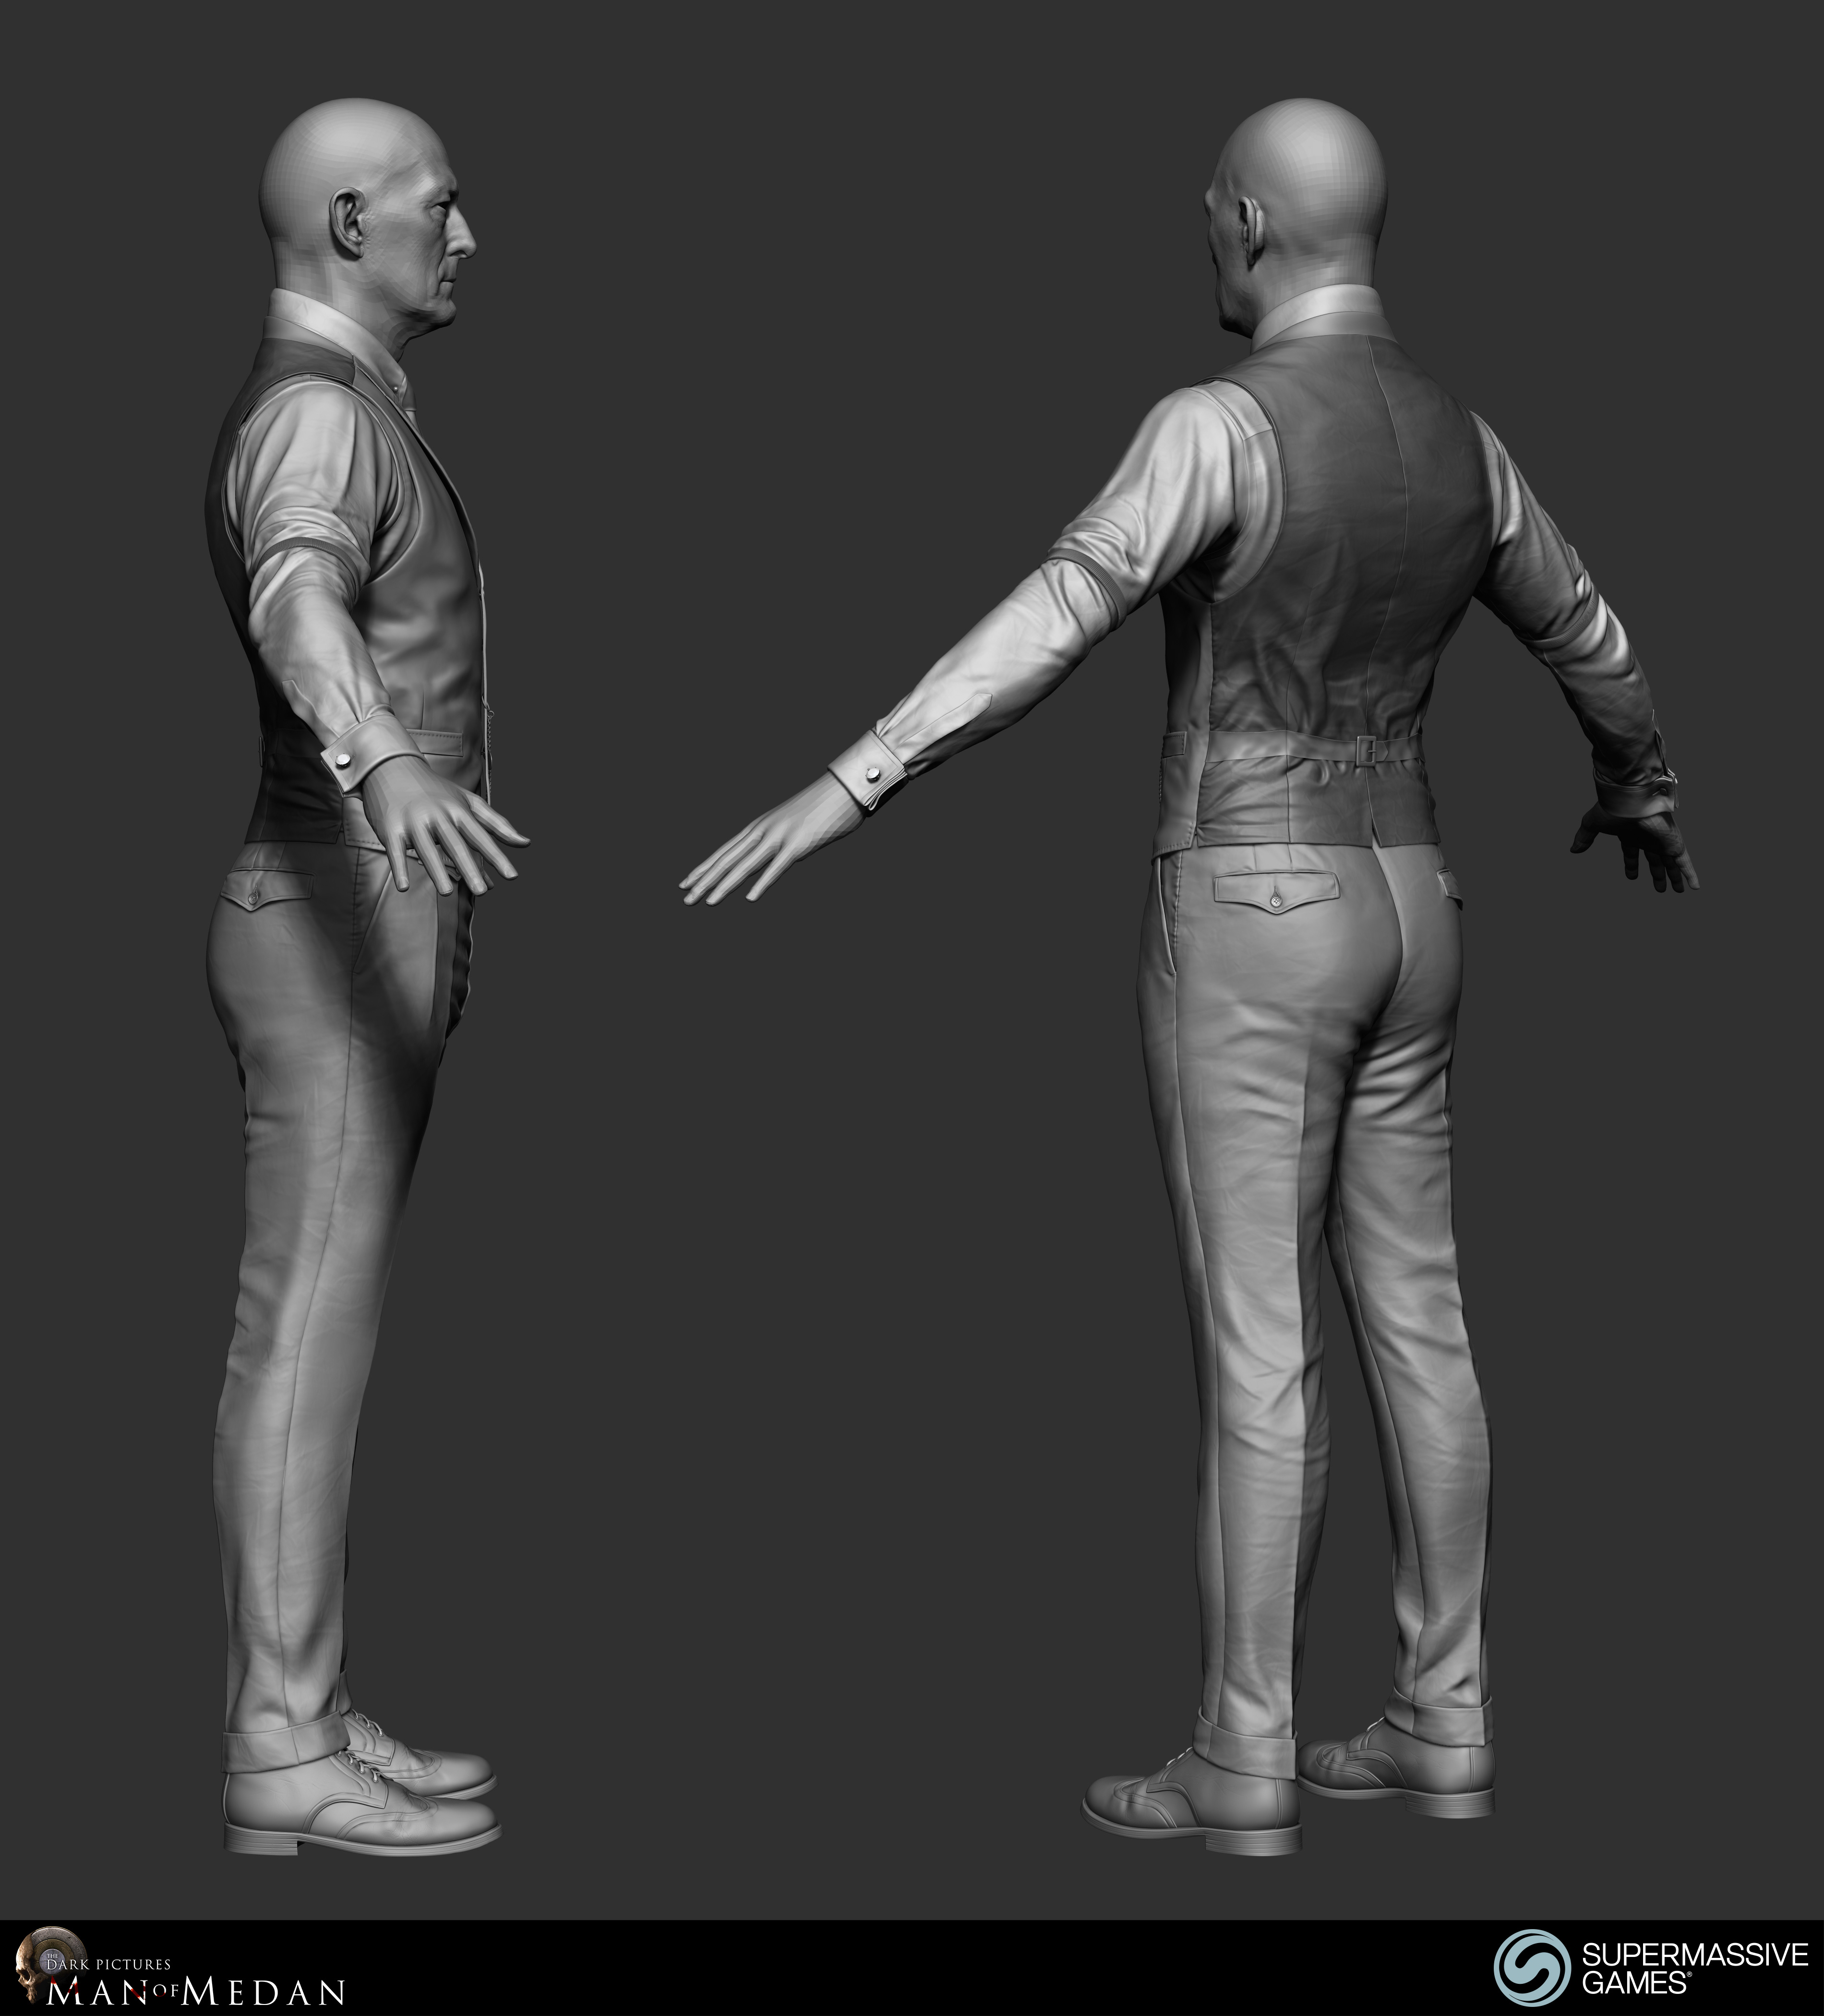 The Curator character in his elegant costume from Dark Pictures. Waistcoat, shirt, sleeve garter, cufflink, trousers, tie, poclet watch. ZBrush sculpting by Andor Kollar.